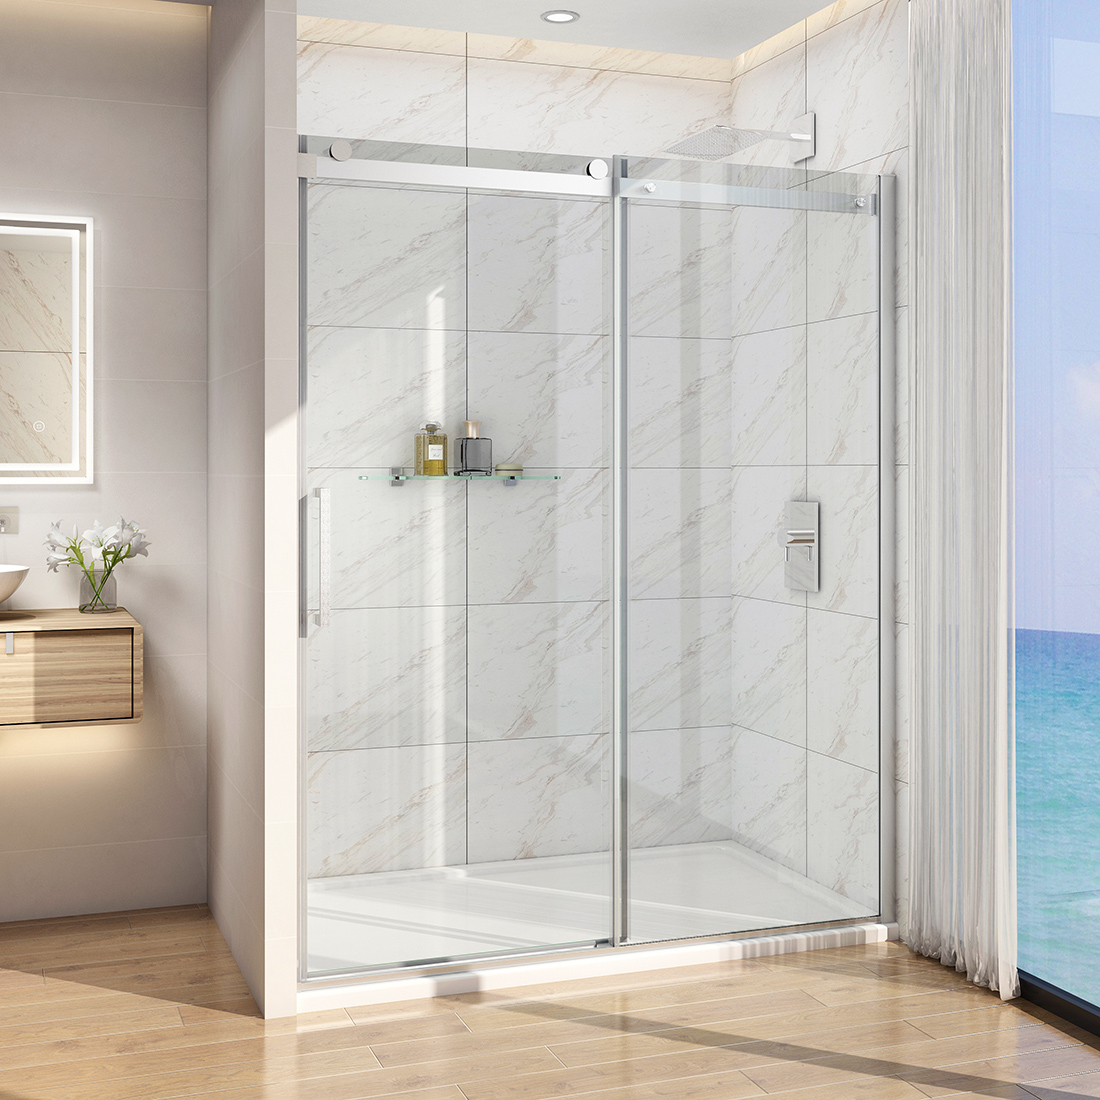 Details About Bath 60 X 72 Frameless Sliding Shower Door Screen 5 16 Glass Brushed Nickel